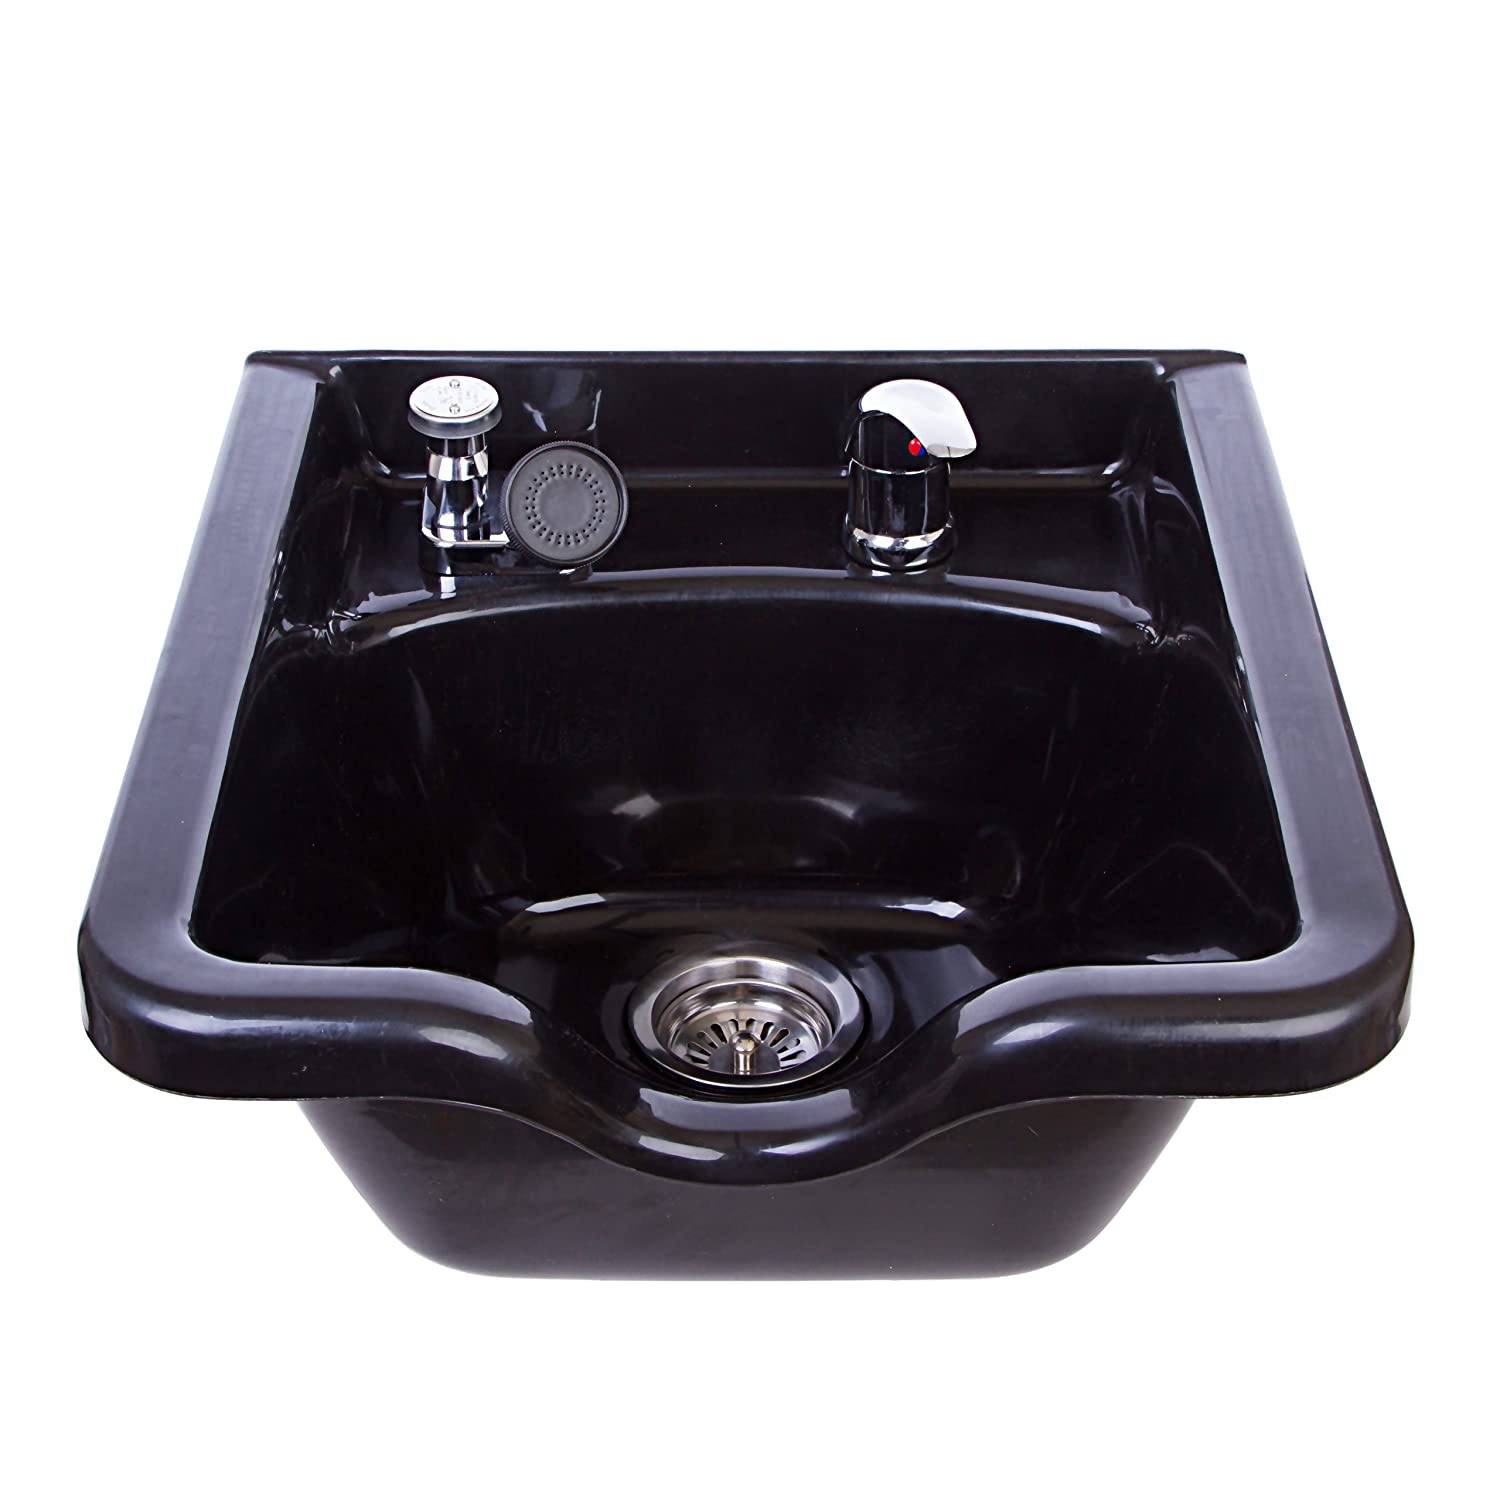 Square Shampoo Bowl Black ABS Plastic Salon and Spa Hair Sink Beauty Salon Equipment TLC-1016 KSGT eMark Beauty TLC-B11